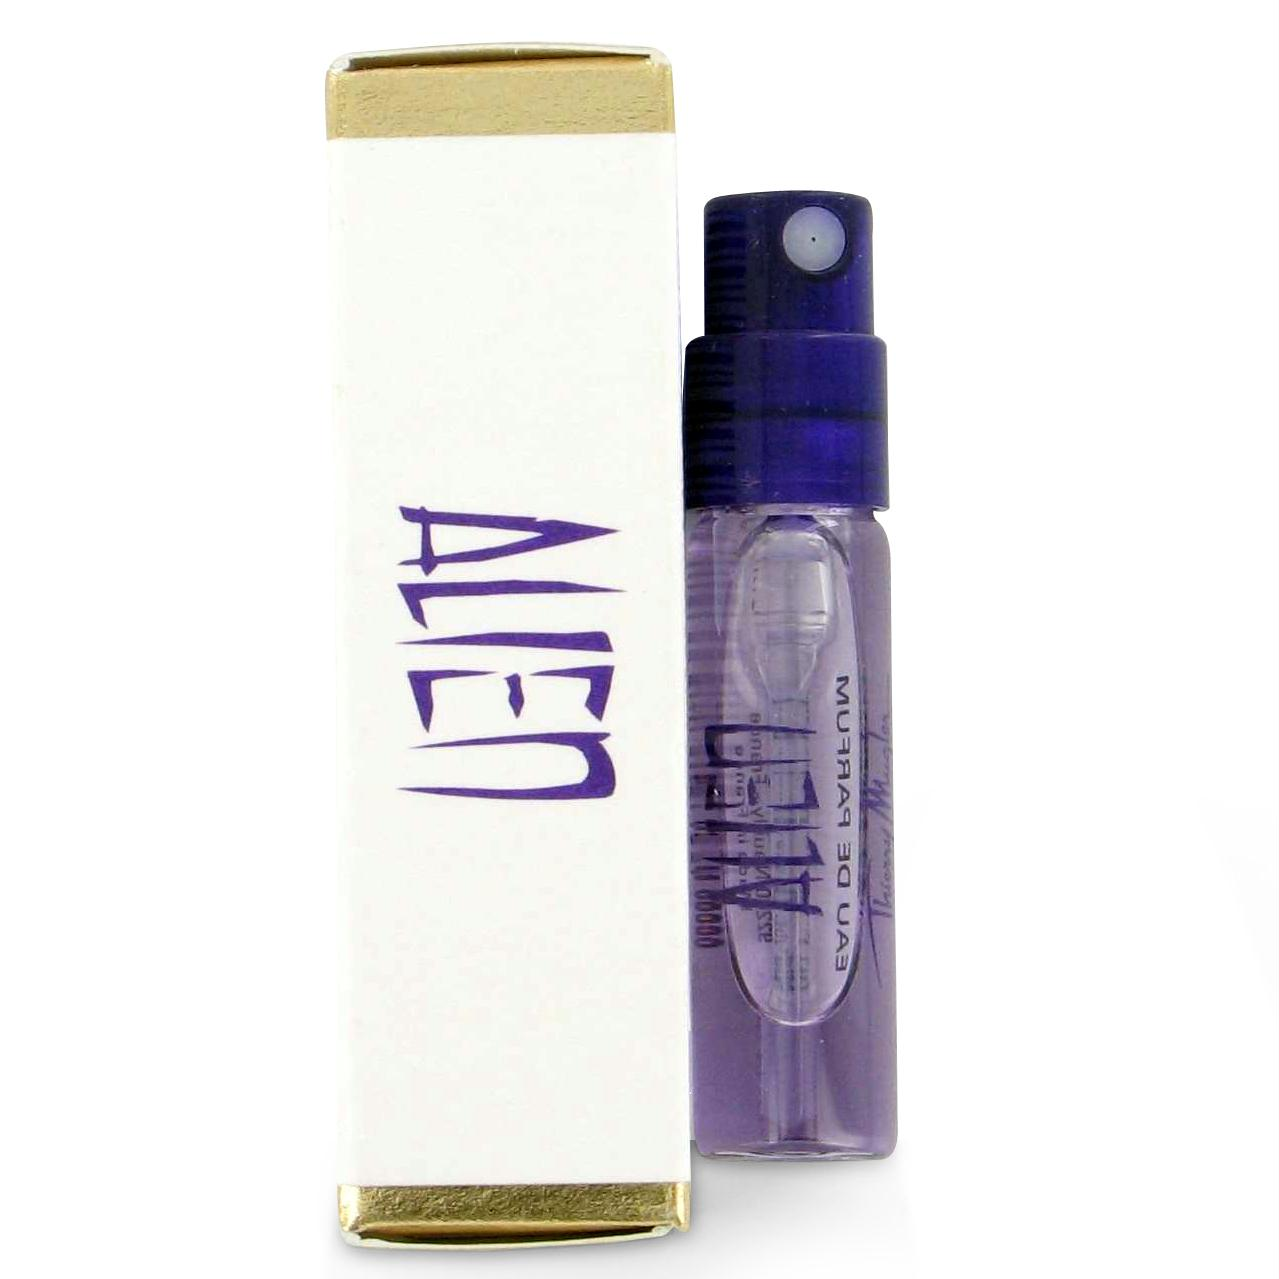 Alien by Thierry Mugler Vial sample .05 oz